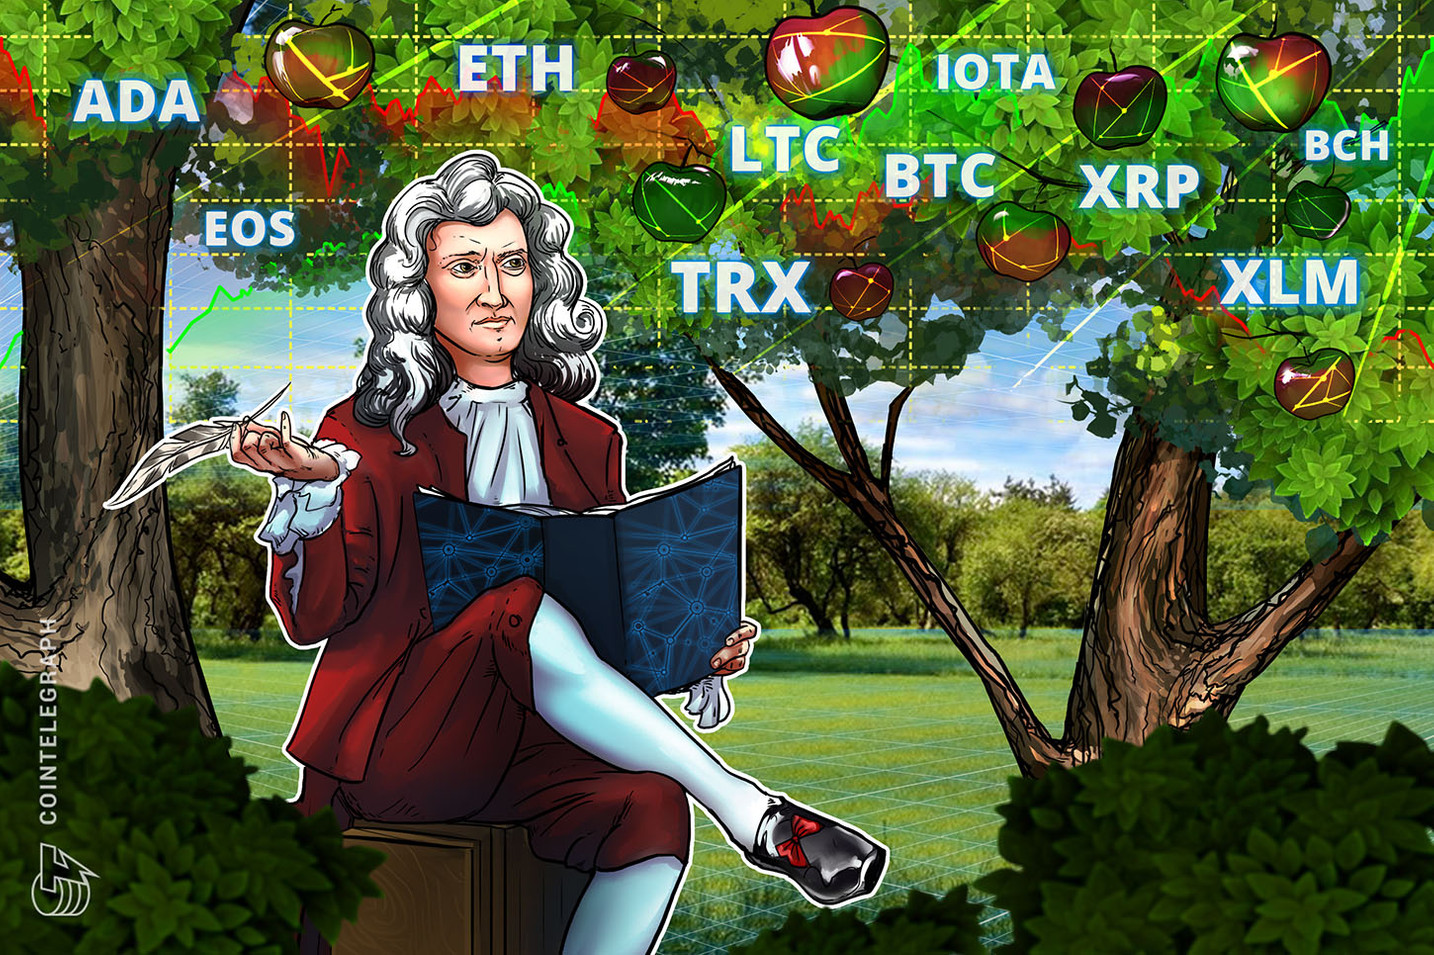 Bitcoin, Ethereum, Ripple, Bitcoin Cash, EOS, Litecoin, Cardano, Stellar, IOTA, TRON: Price Analysis, July 20